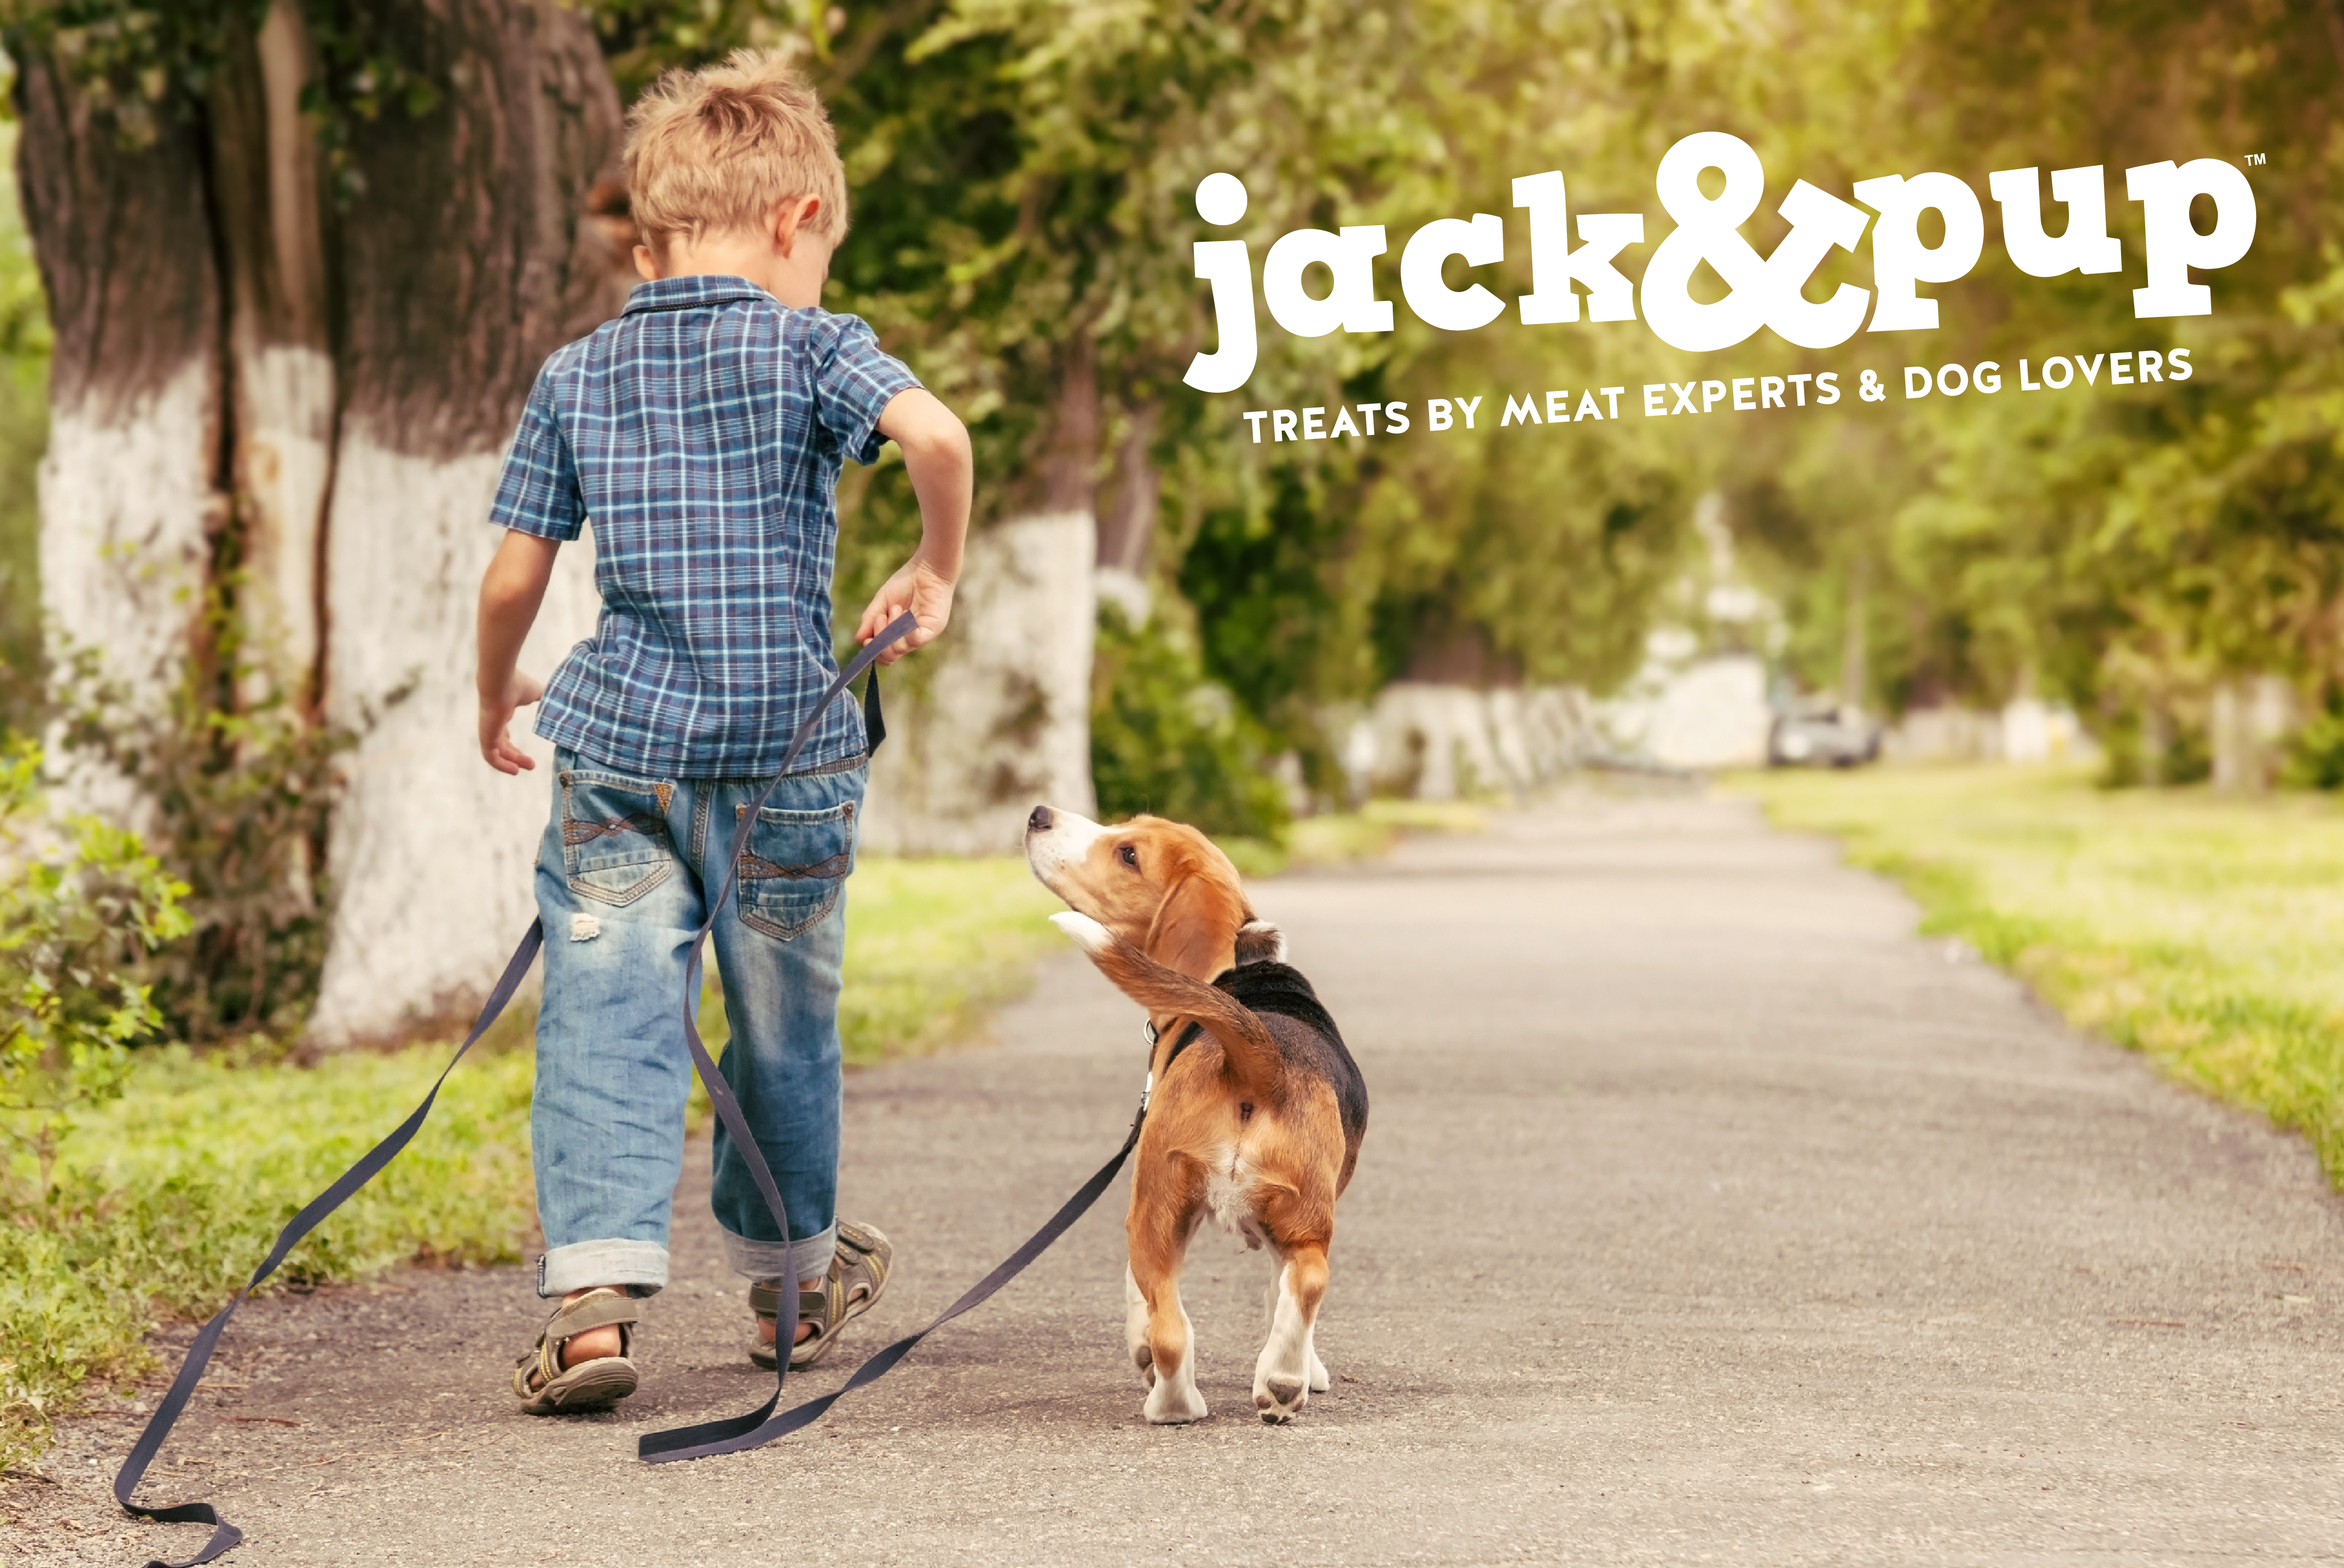 Jack and Pup Dog Treats Branding